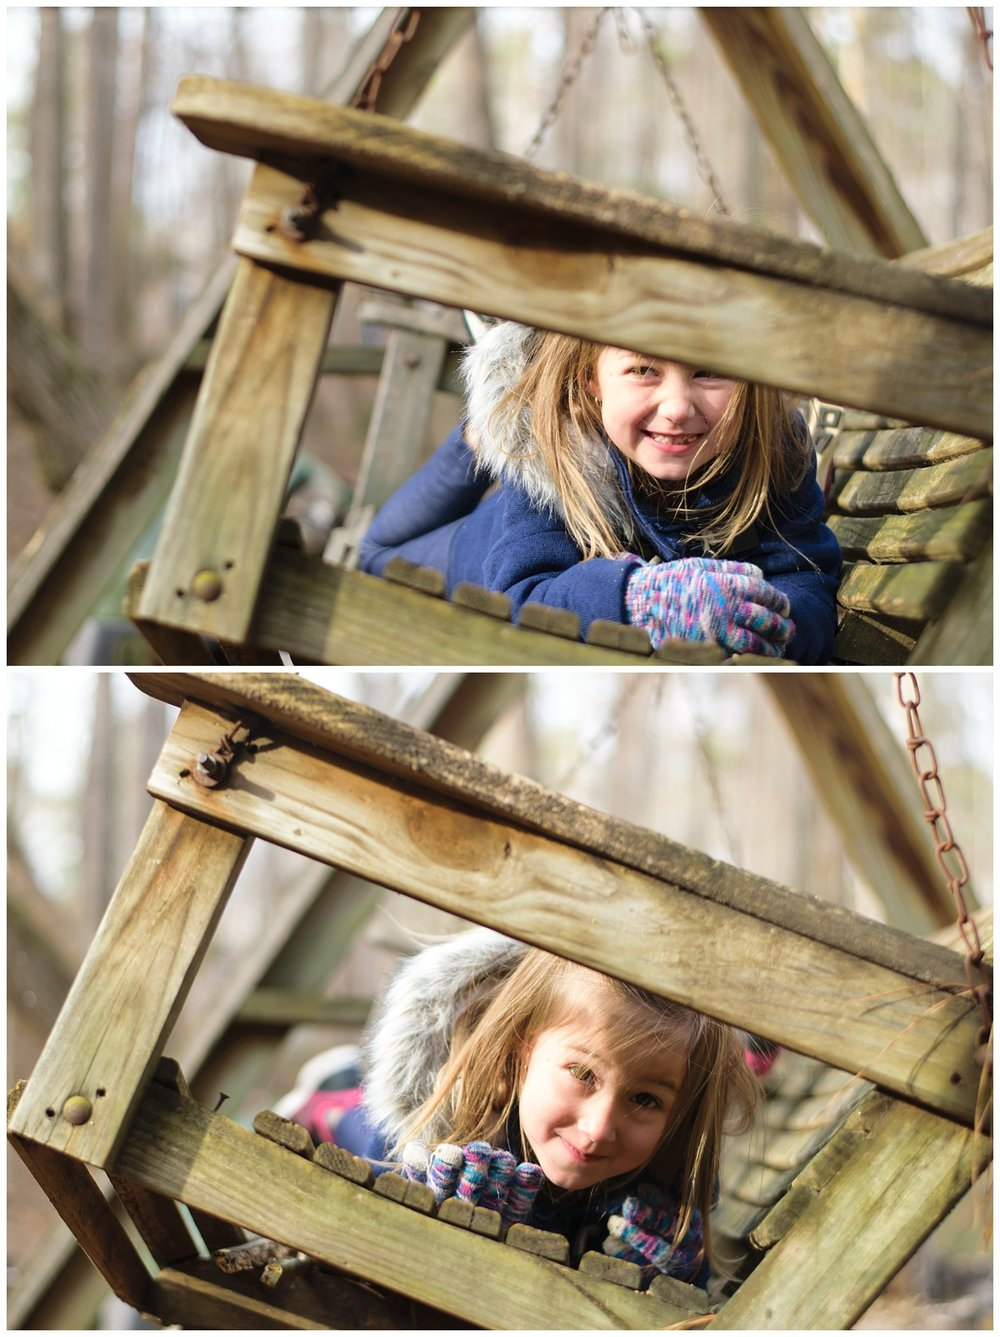 these are images of a young girl during a family lifestyle holiday session in dallas georgia. the girl is laying on a bench swing in the family's backyard and smiling at the camera.